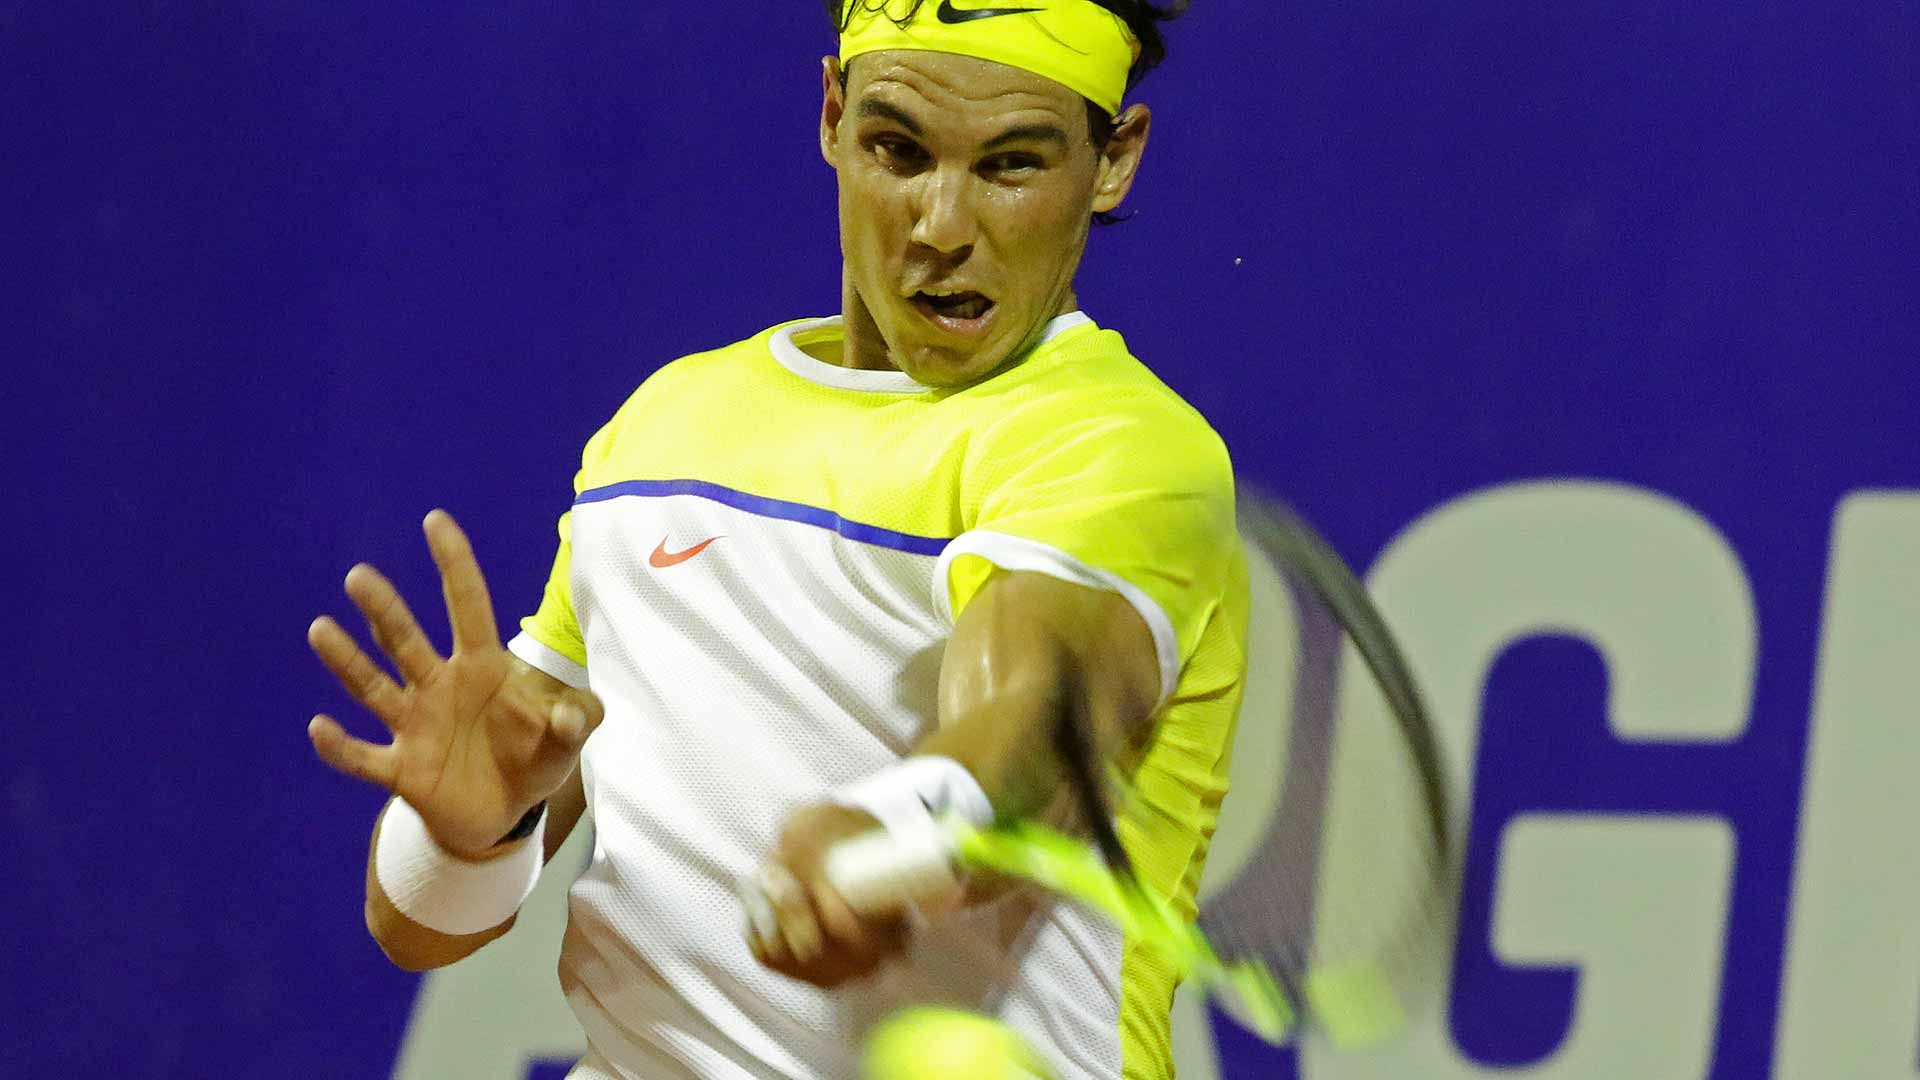 Nadal takes on Lorenzi